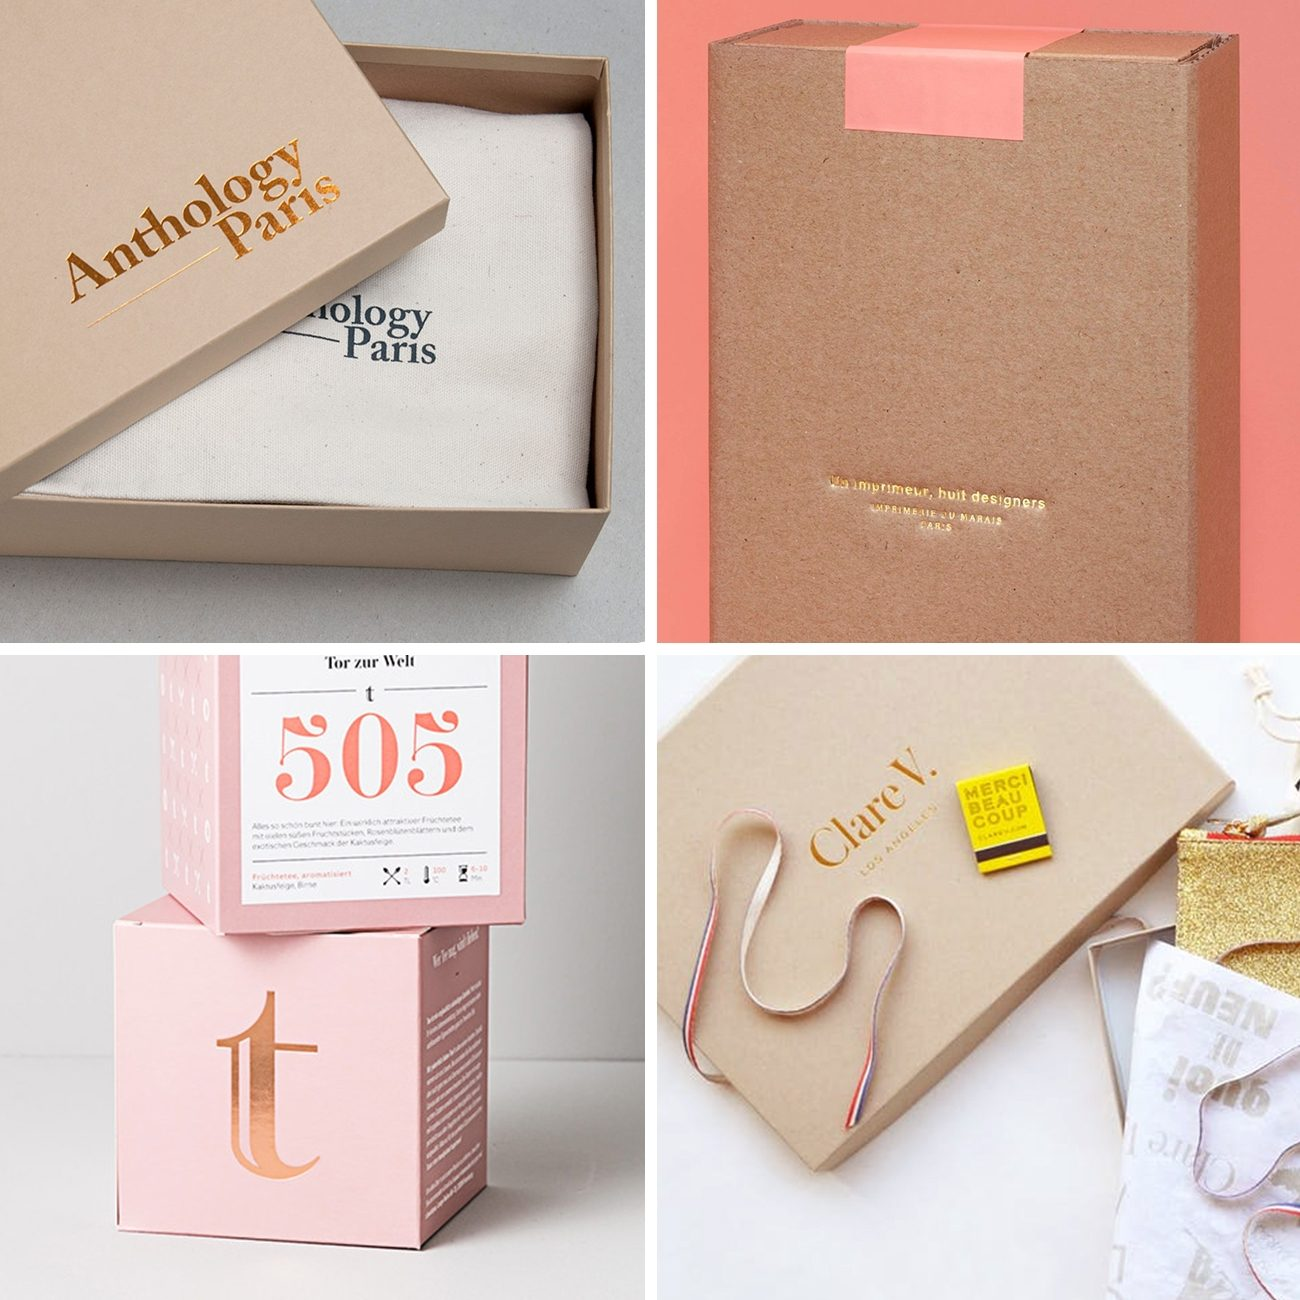 Photos via: Parametro Studio, Studio Plastac, Braeutigam Rotermund, Clare V 70 Ideas to Spruce Up Your Holiday Packaging Design